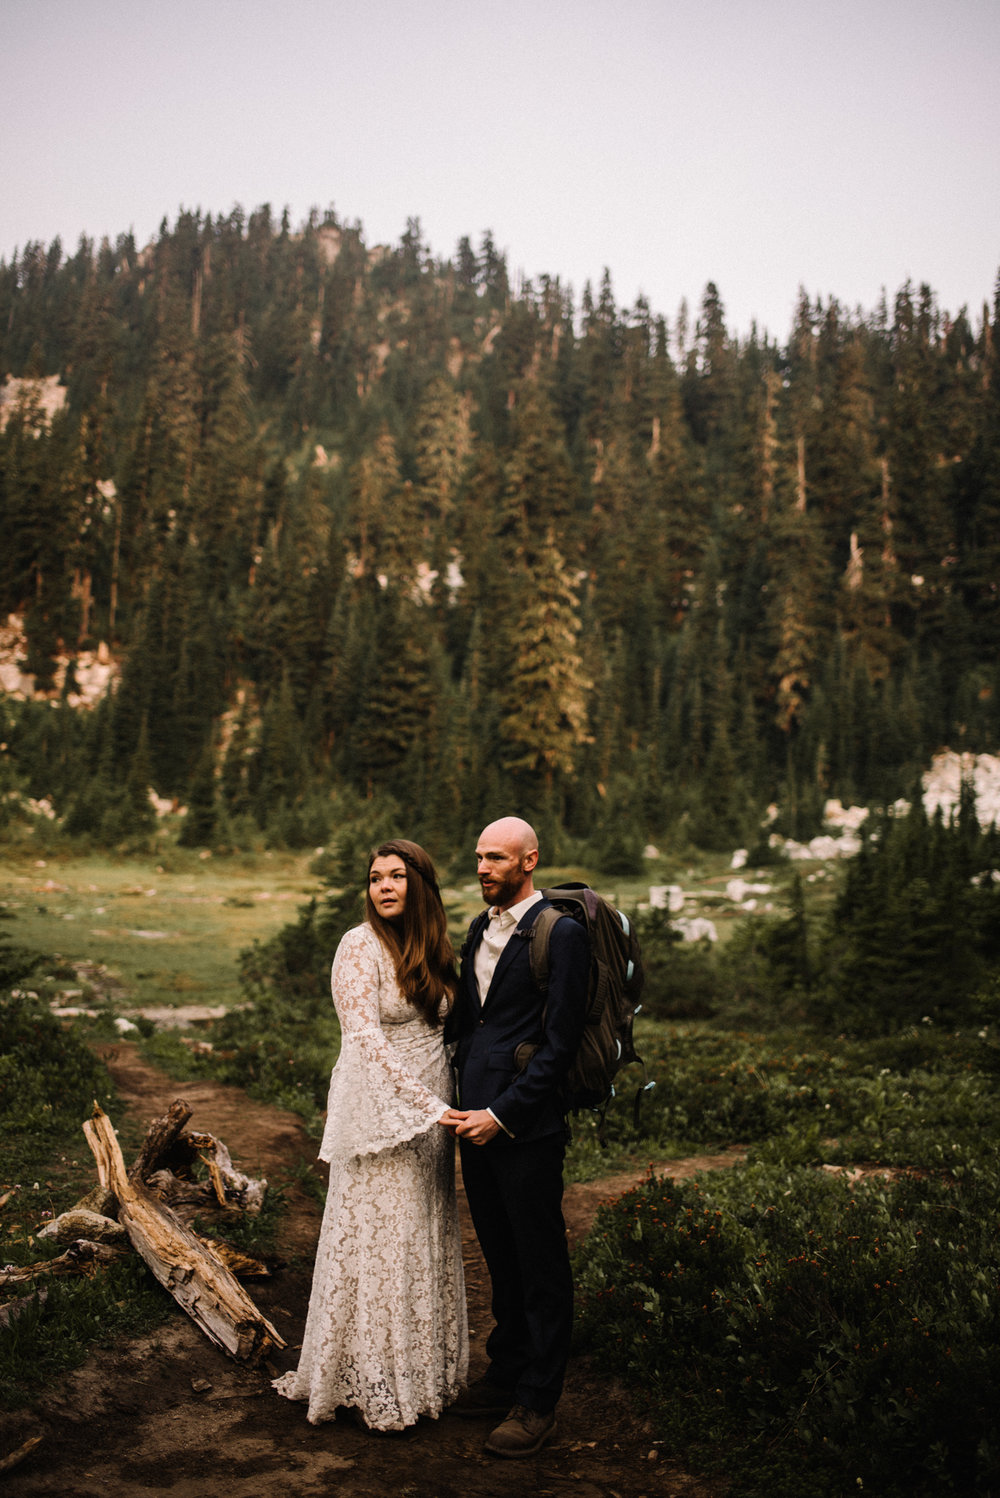 Megan and Andrew Lake Valhalla Washington PNW Adventure Elopement White Sails Creative Sunrise Hike_7.JPG